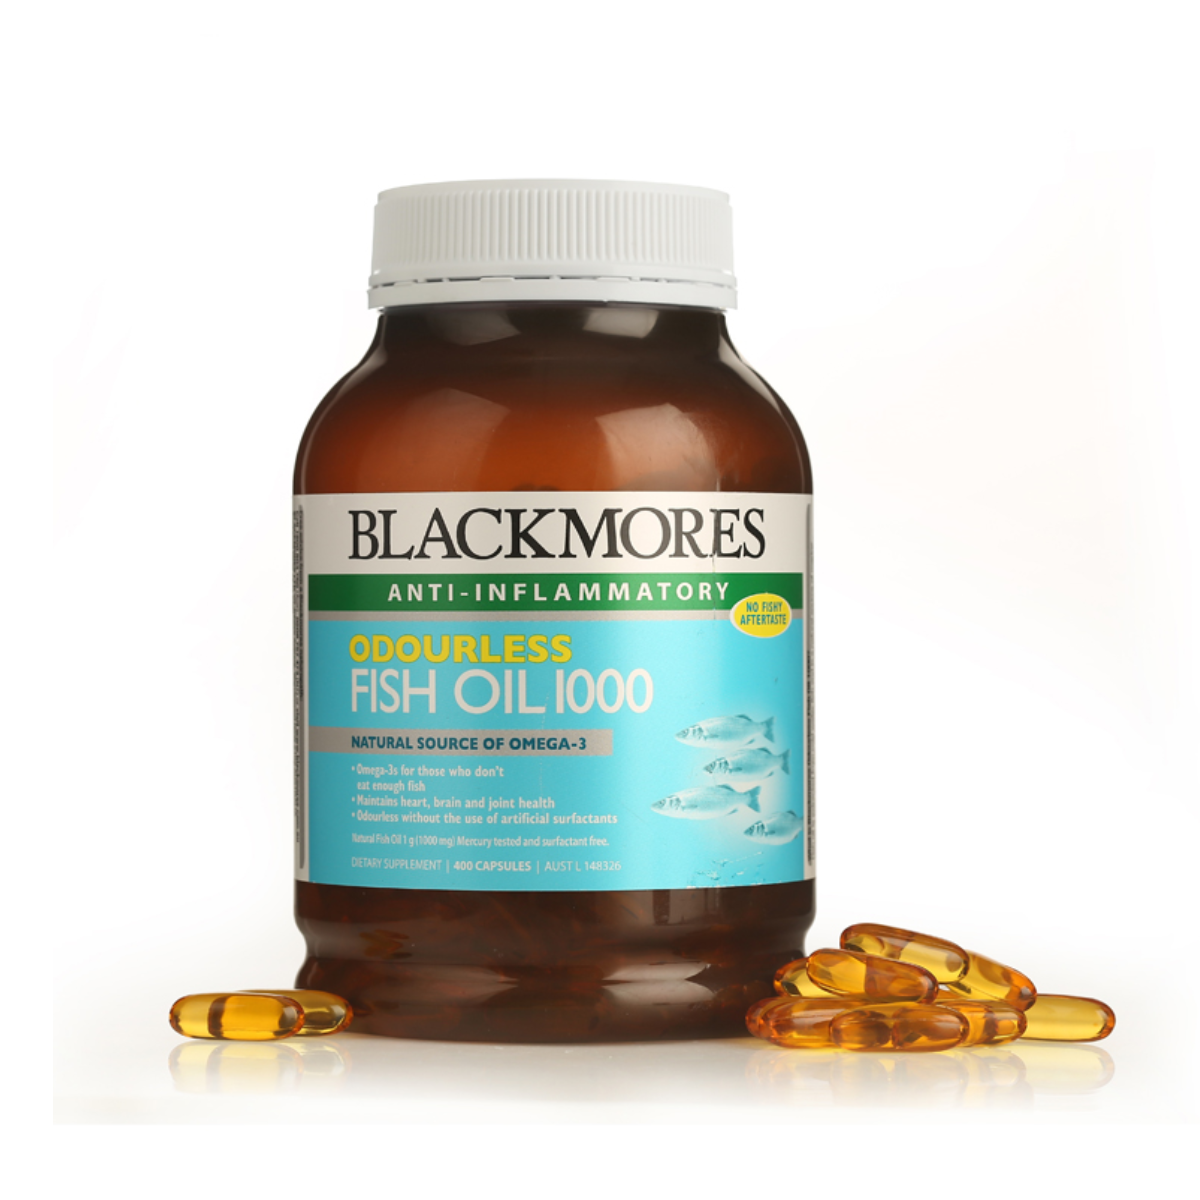 BLACKMORES Odourless Fish Oil 1000 (Balanced Imports)